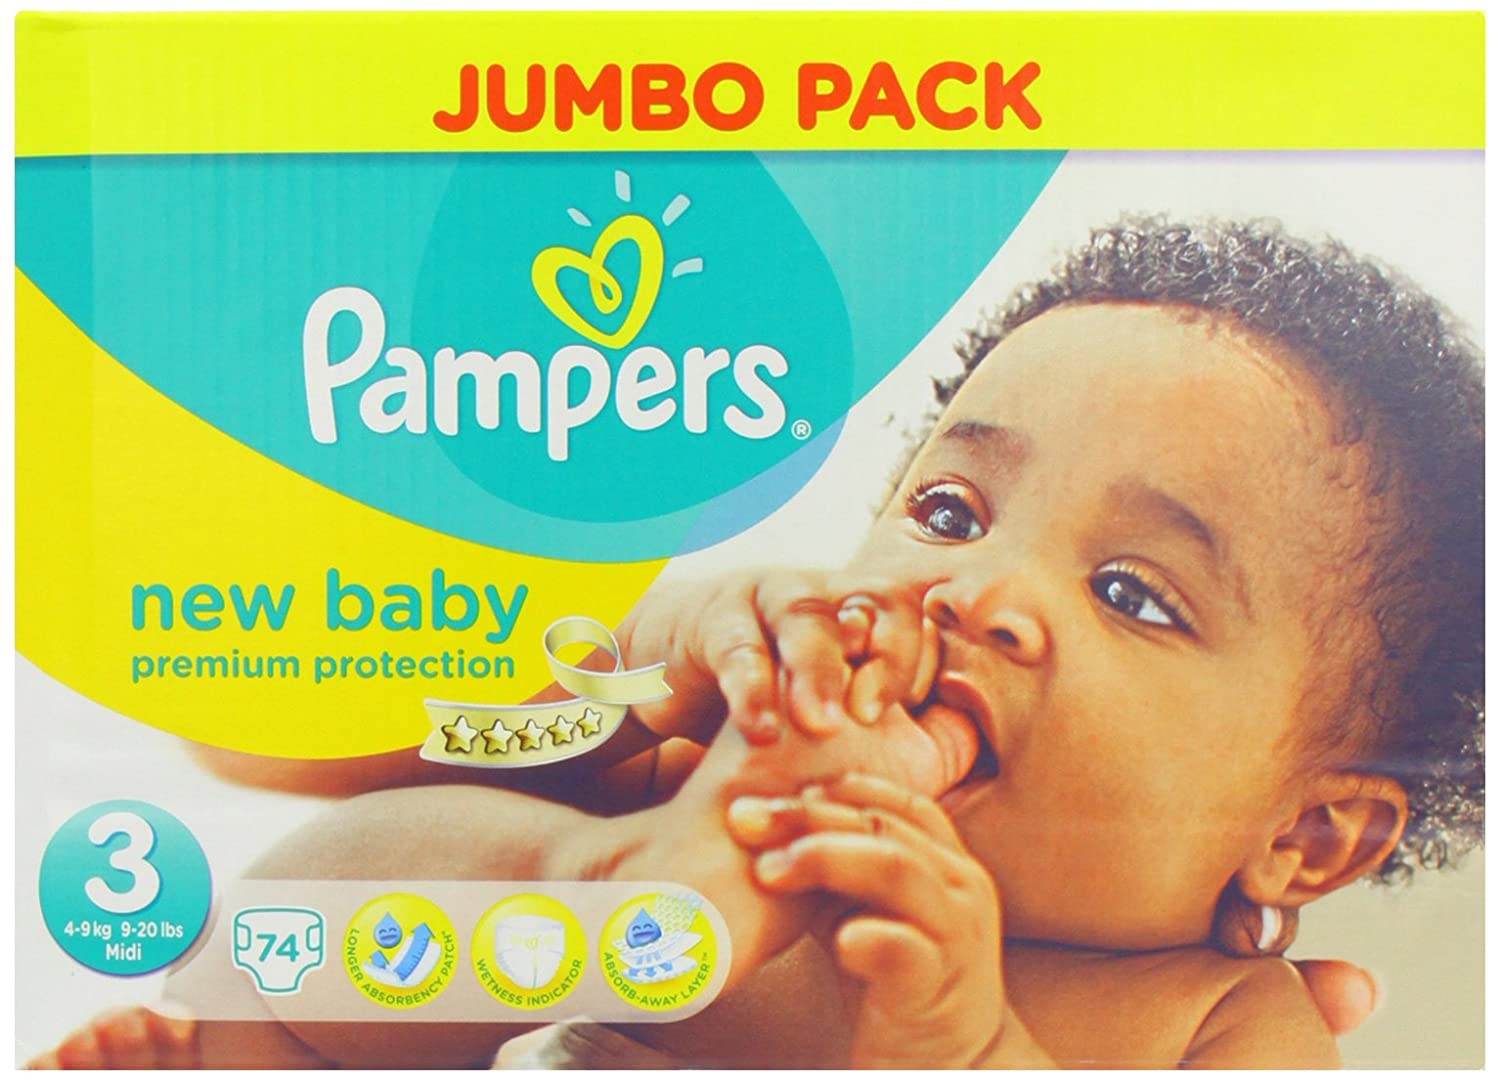 Pampers new baby nappies 2014 size 3 74 nappies amazon pampers new baby nappies 2014 size 3 74 nappies amazon health personal care nvjuhfo Image collections